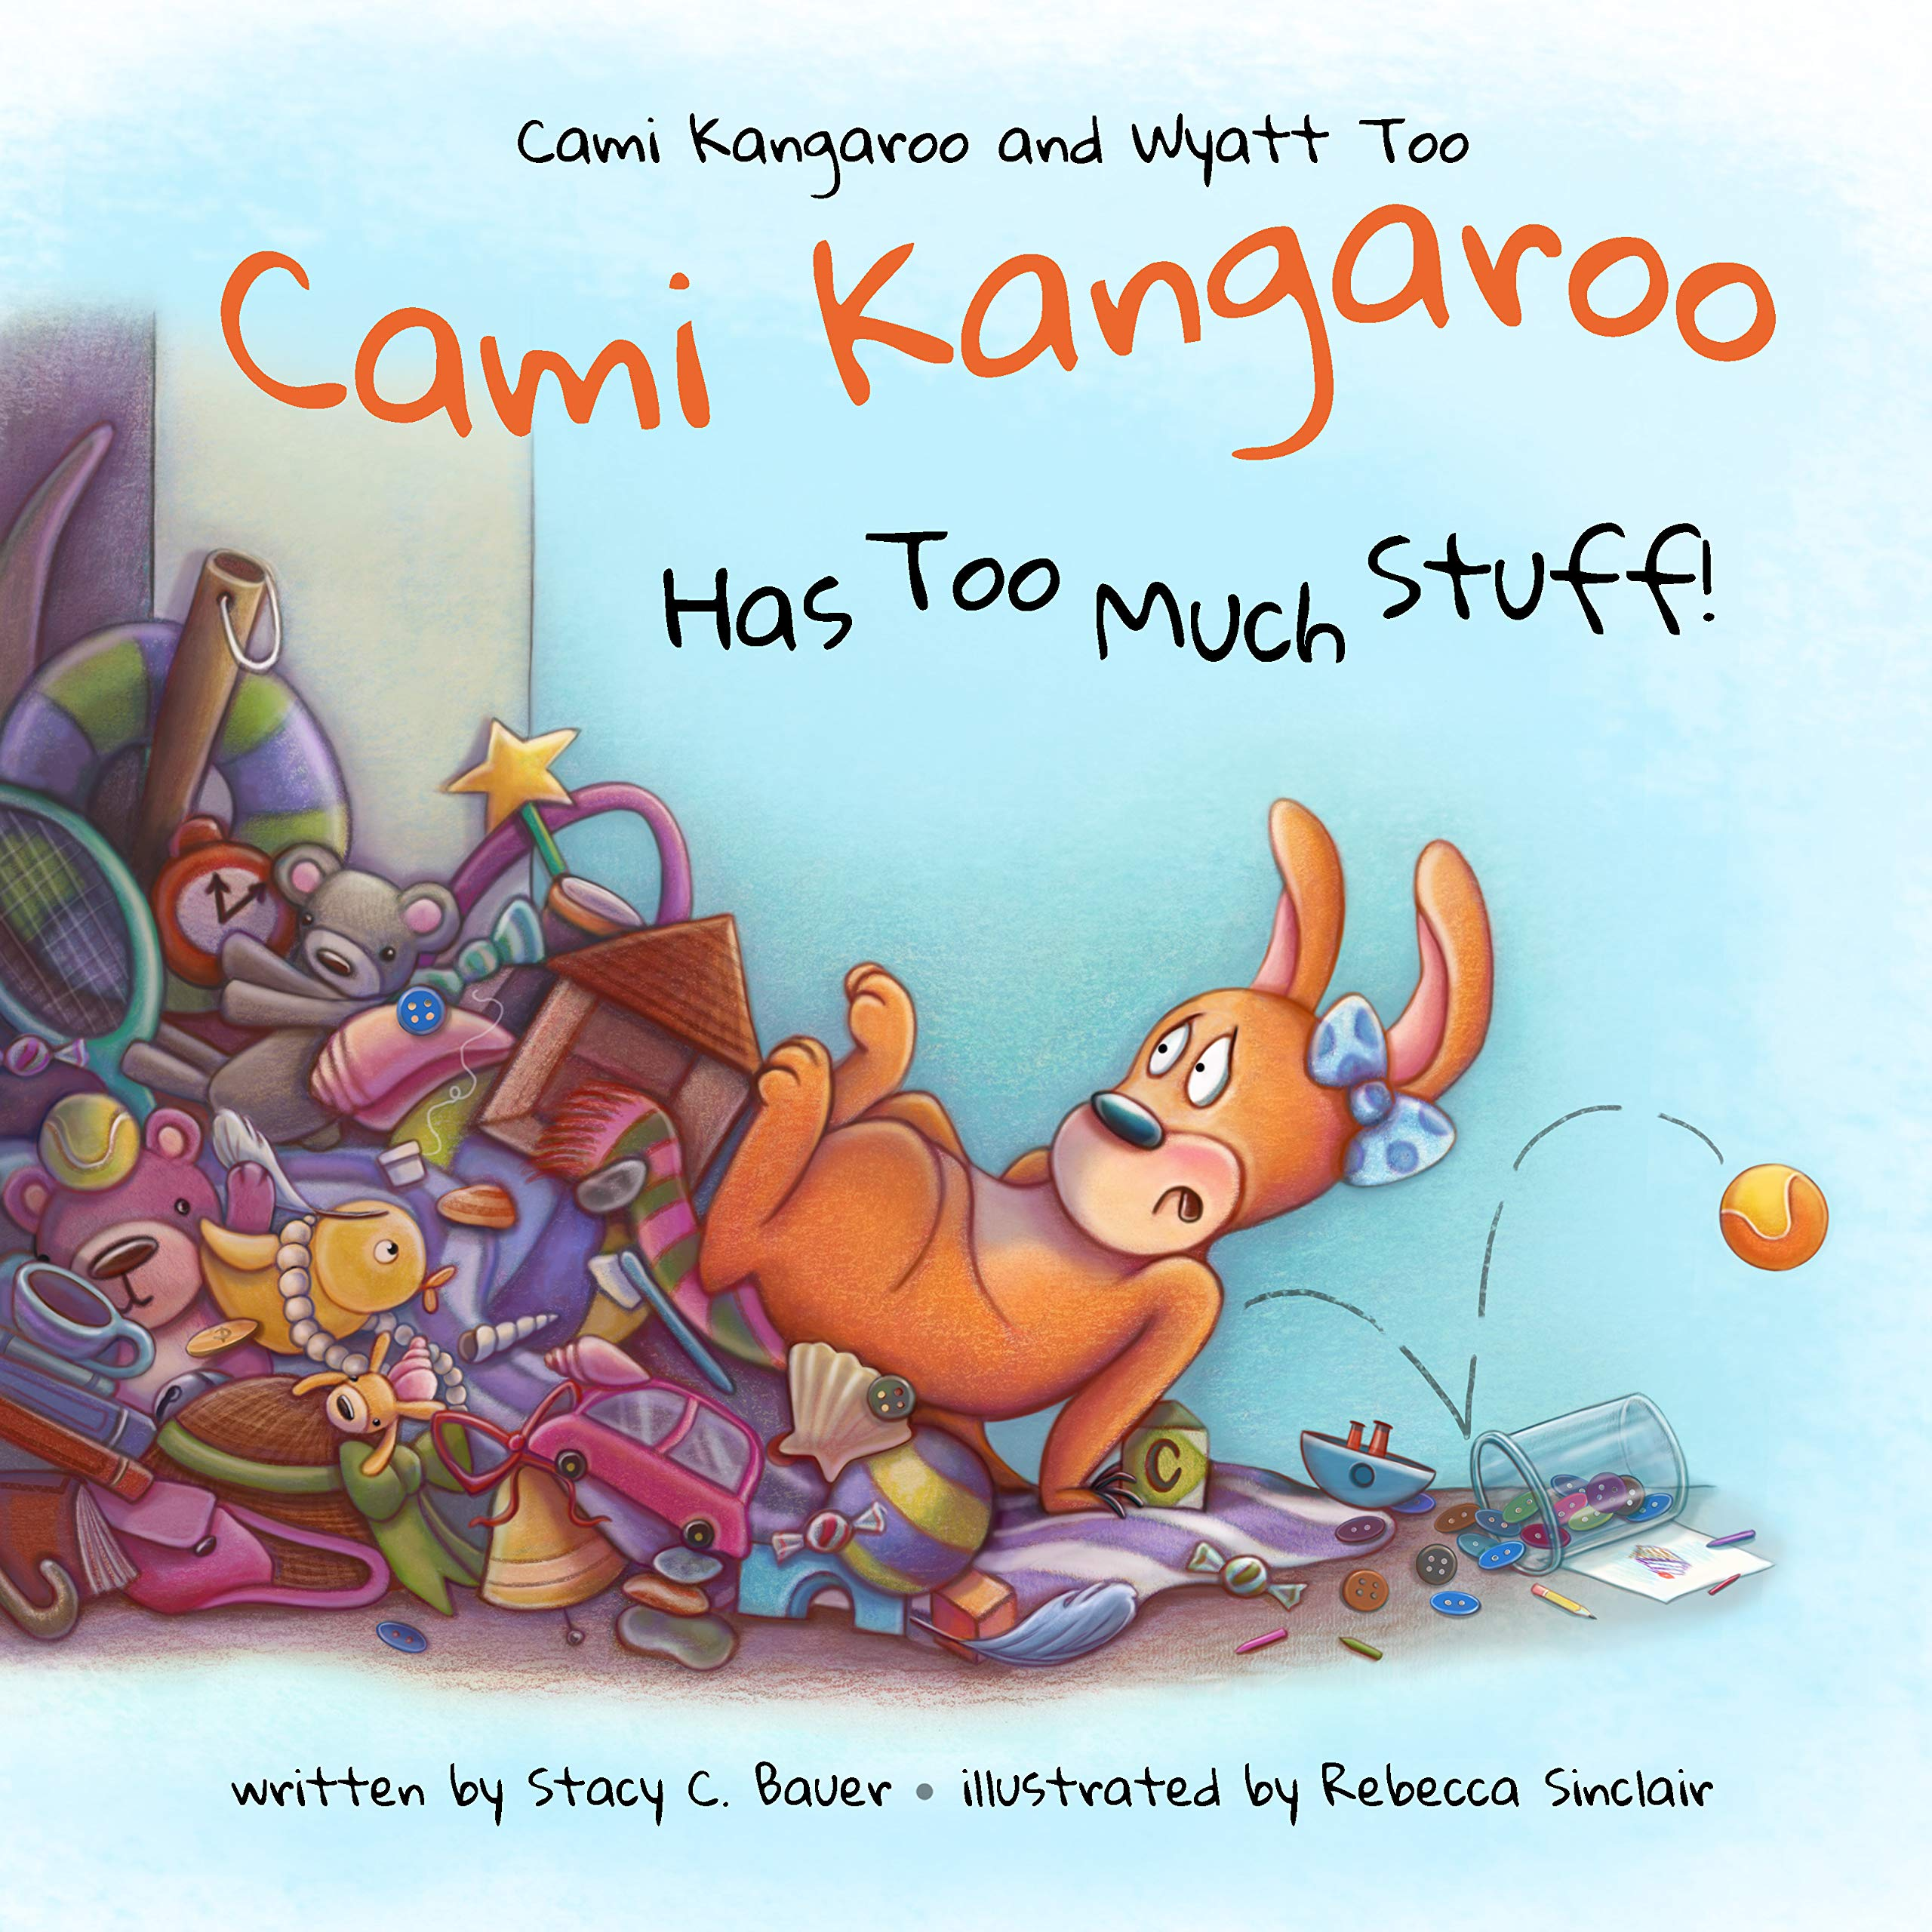 Cami Kangaroo Has Too Much Stuff - By Stacy Bauer